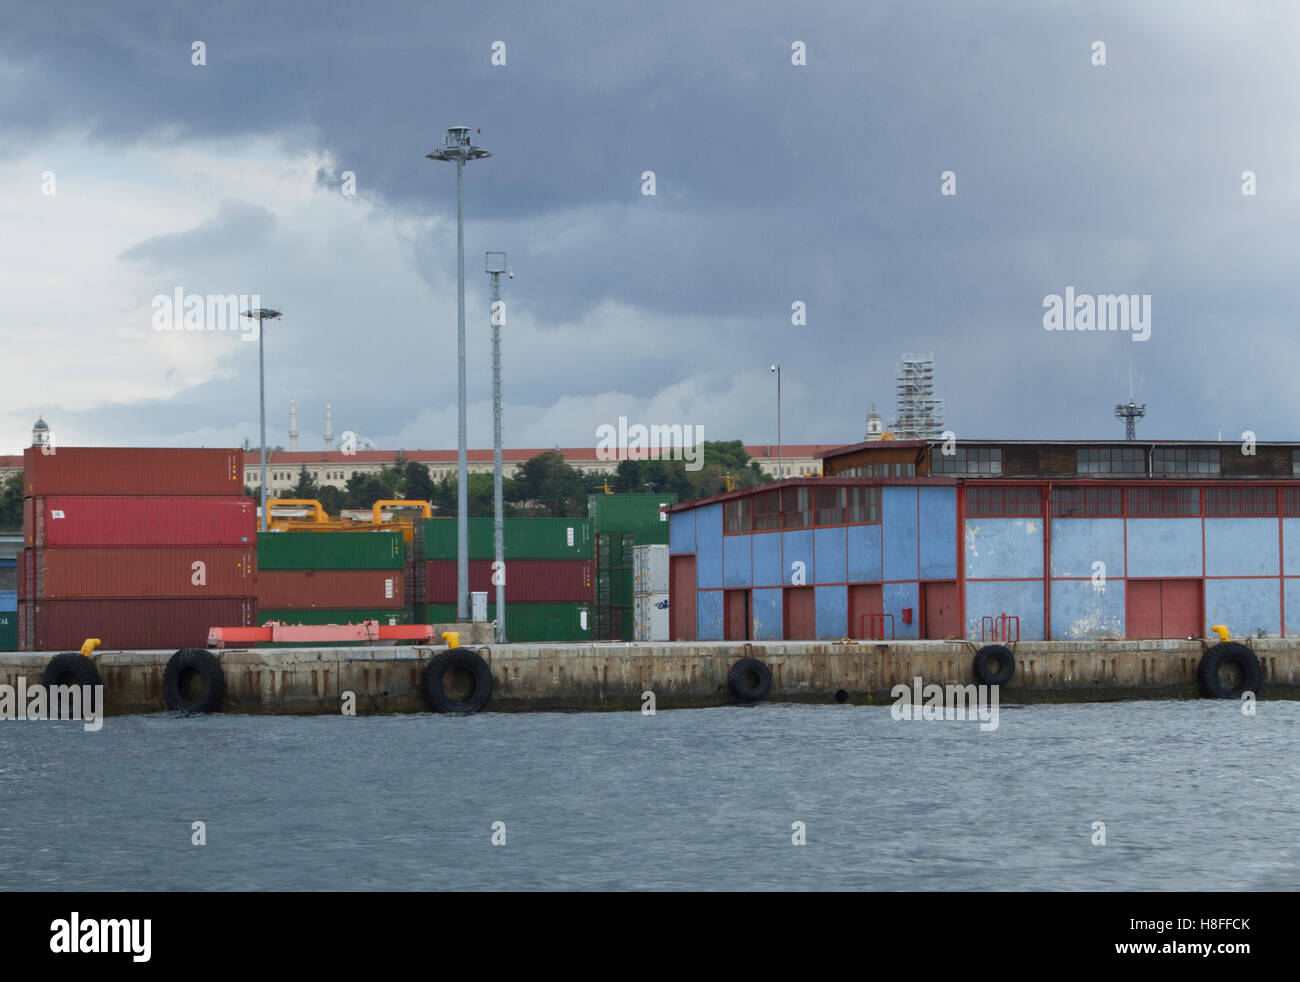 Seaport containers warehouse near sea and storm sky - Stock Image